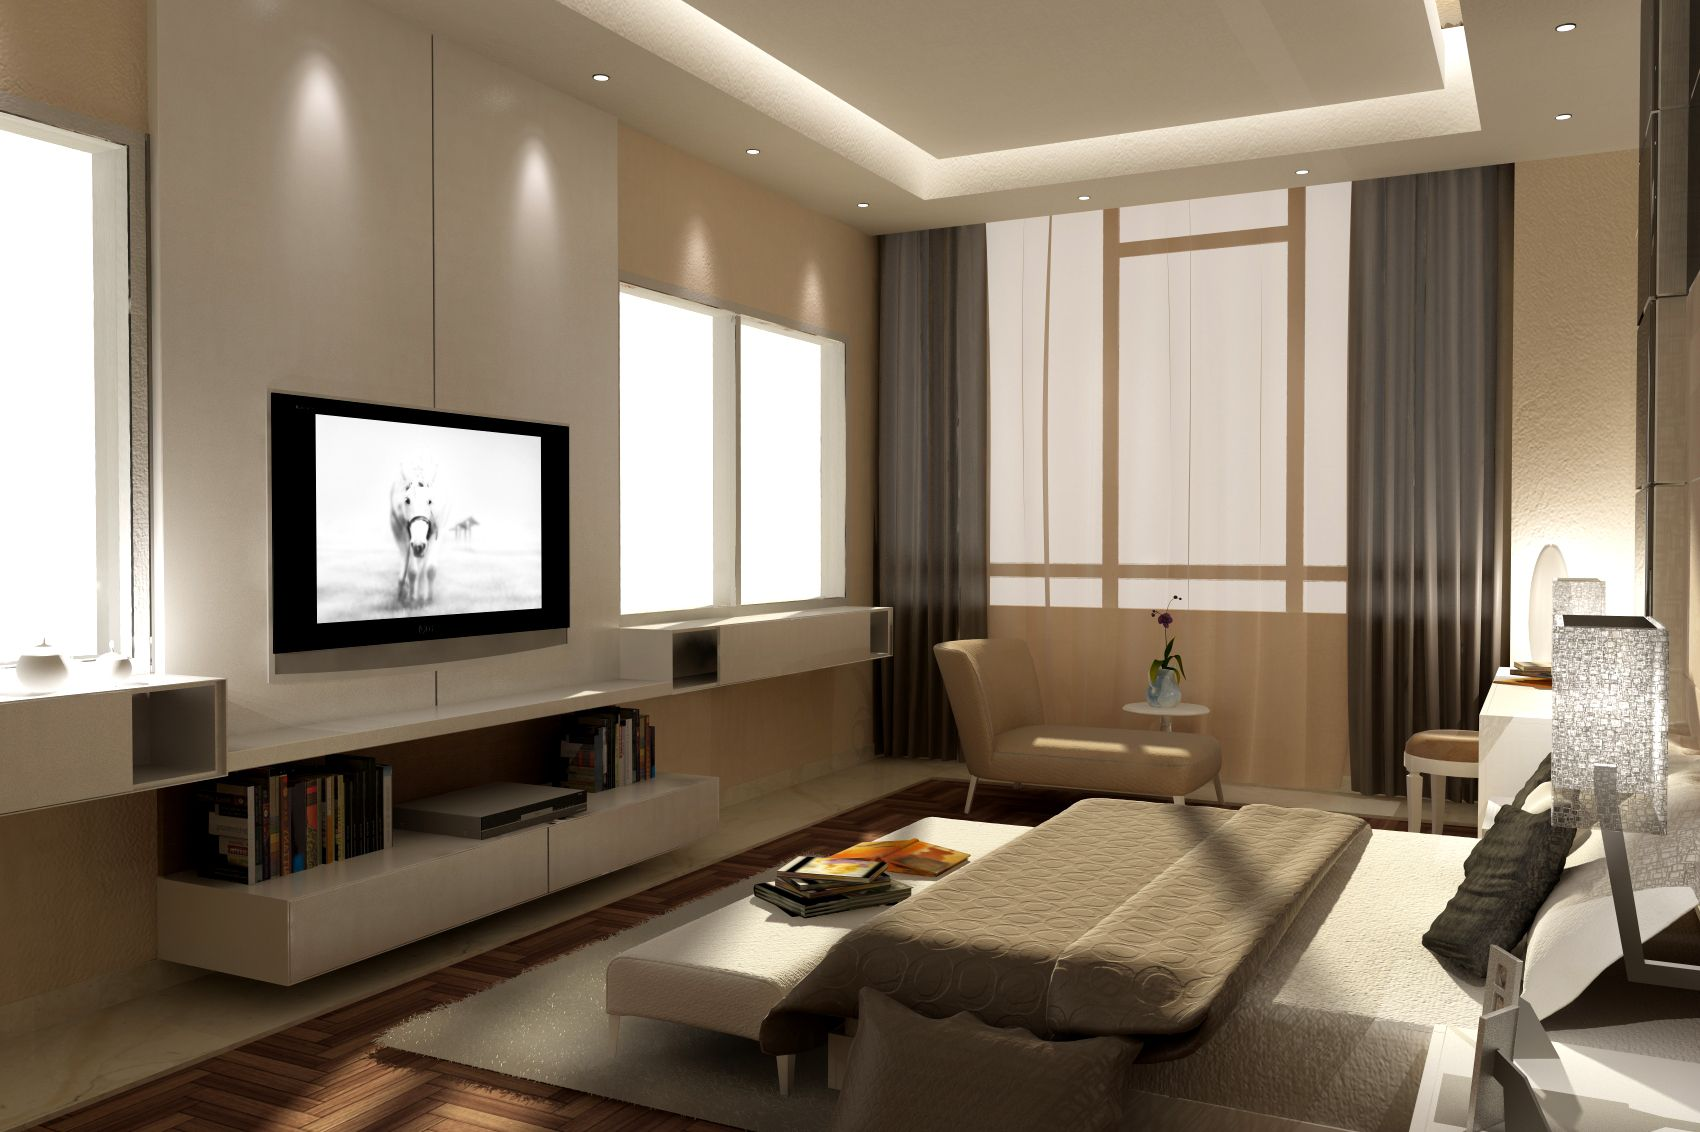 Bedroom modern bedroom interior design 3d max 3d for Modern interior bedroom designs